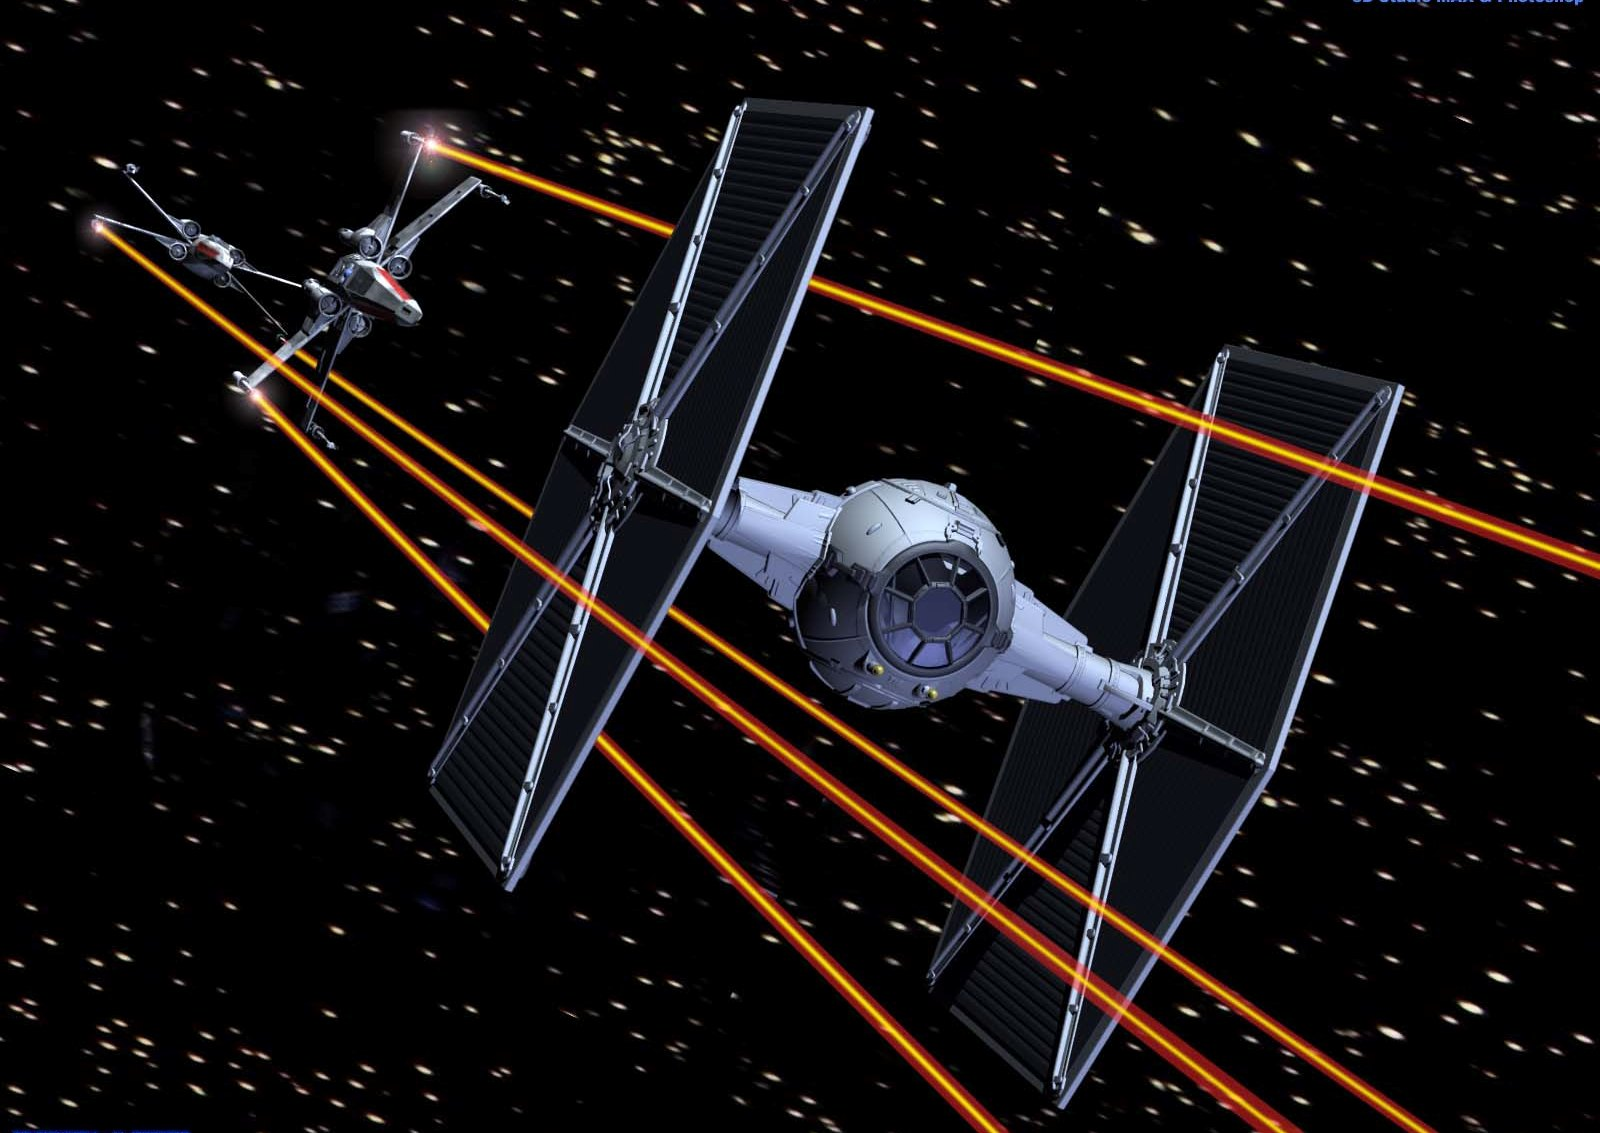 X-Wing Vs. TIE Fighter - The Battle Right Now